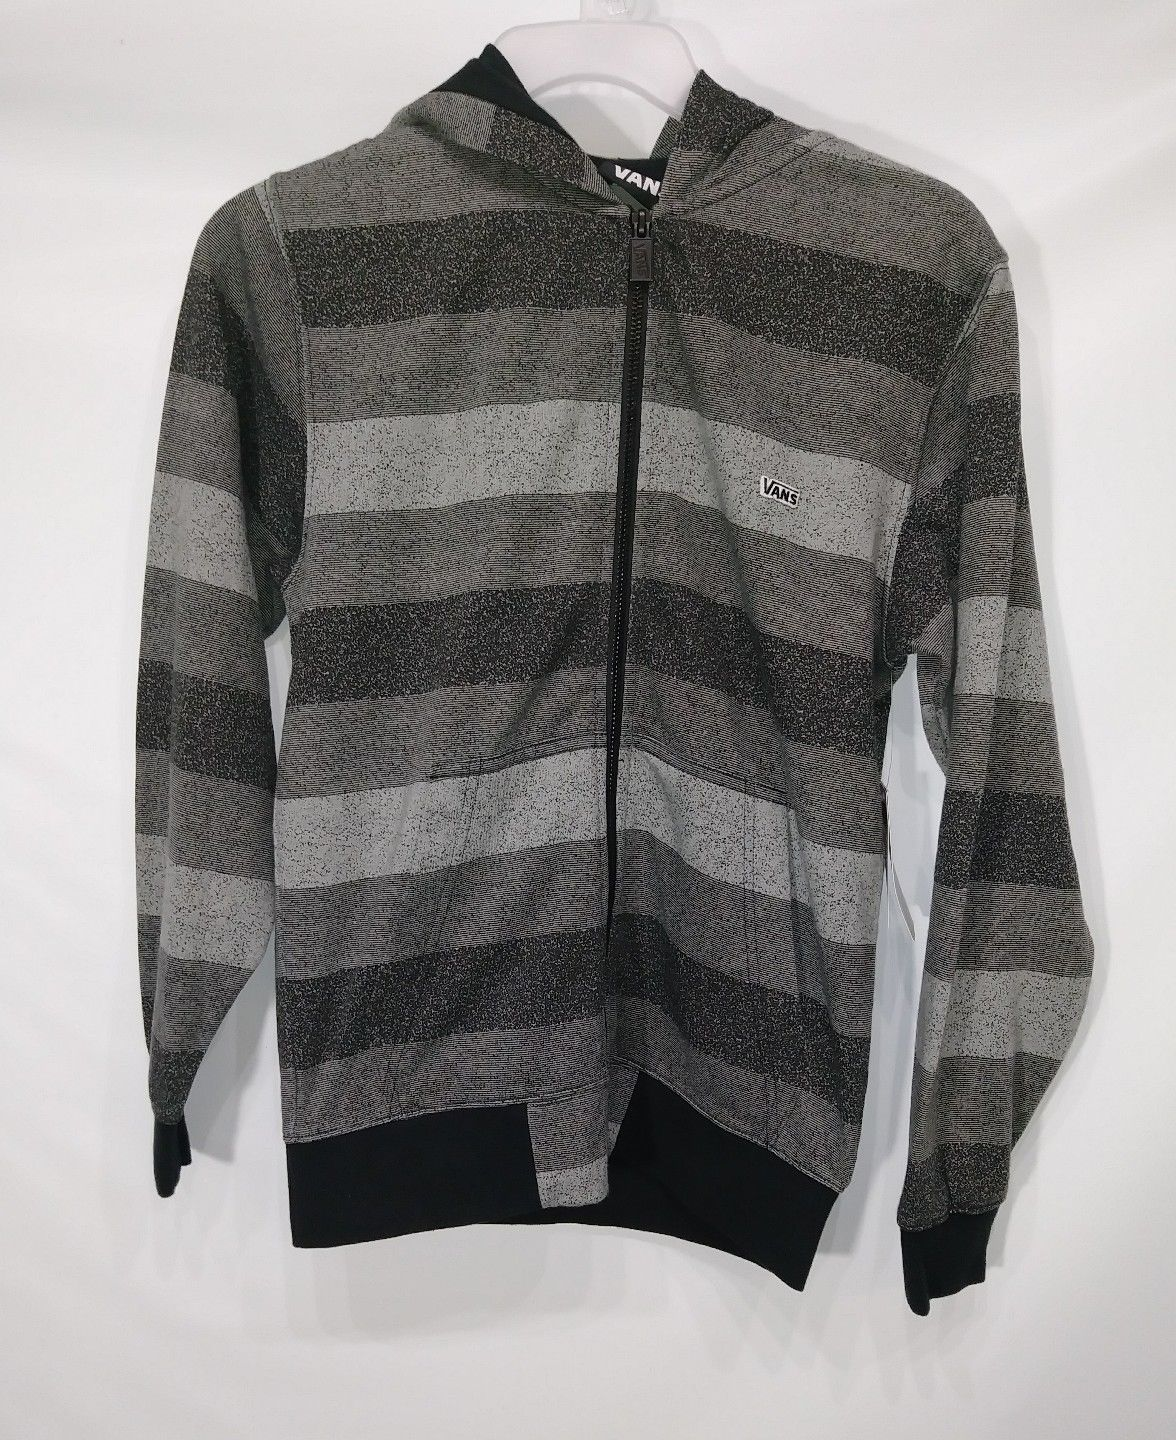 VANS BOYS STRIPED HOODIE FLEECE ZIPUP SWEATER GRAY SIZE SMALL LUKAY RETAIL $60